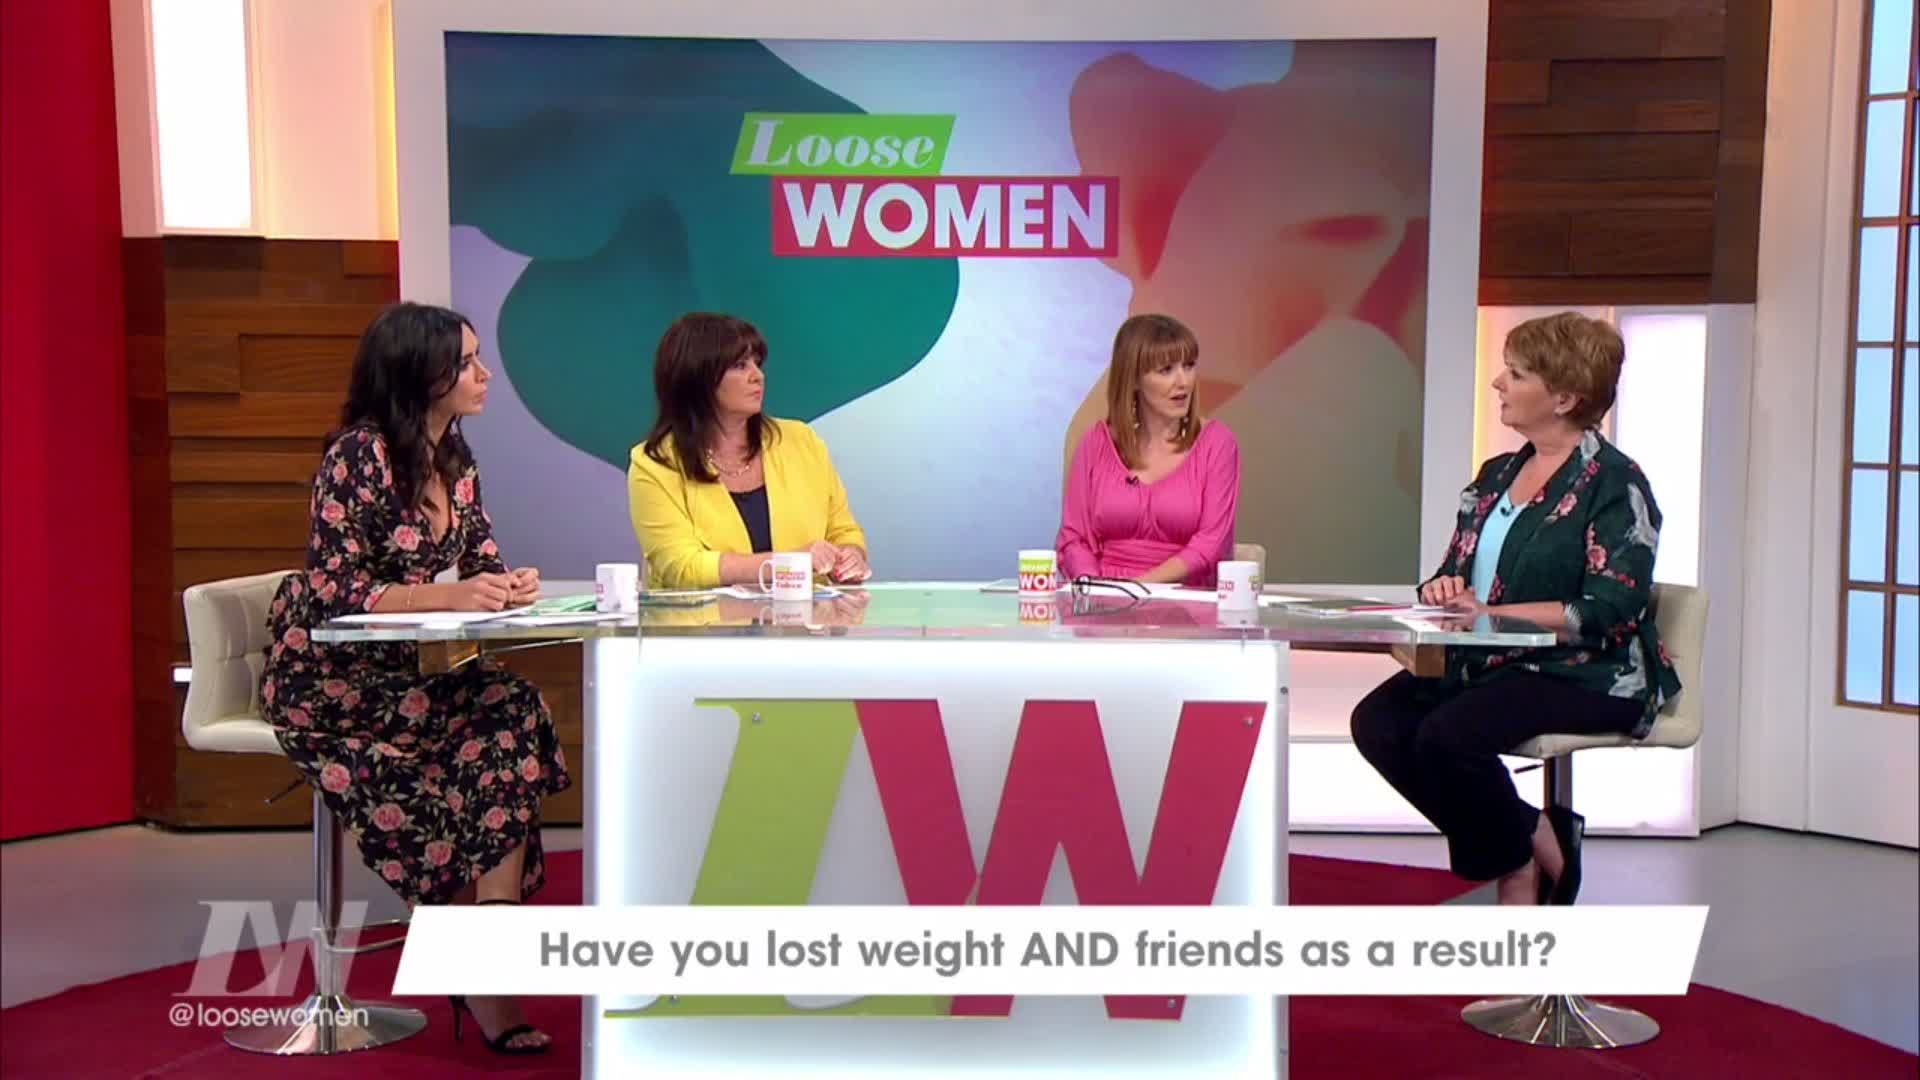 RT @loosewomen: .@NolanColeen was chuffed she was labelled a DUFF... until she found out what it meant... 😁 😁 😁 https://t.co/zeU009oSVB